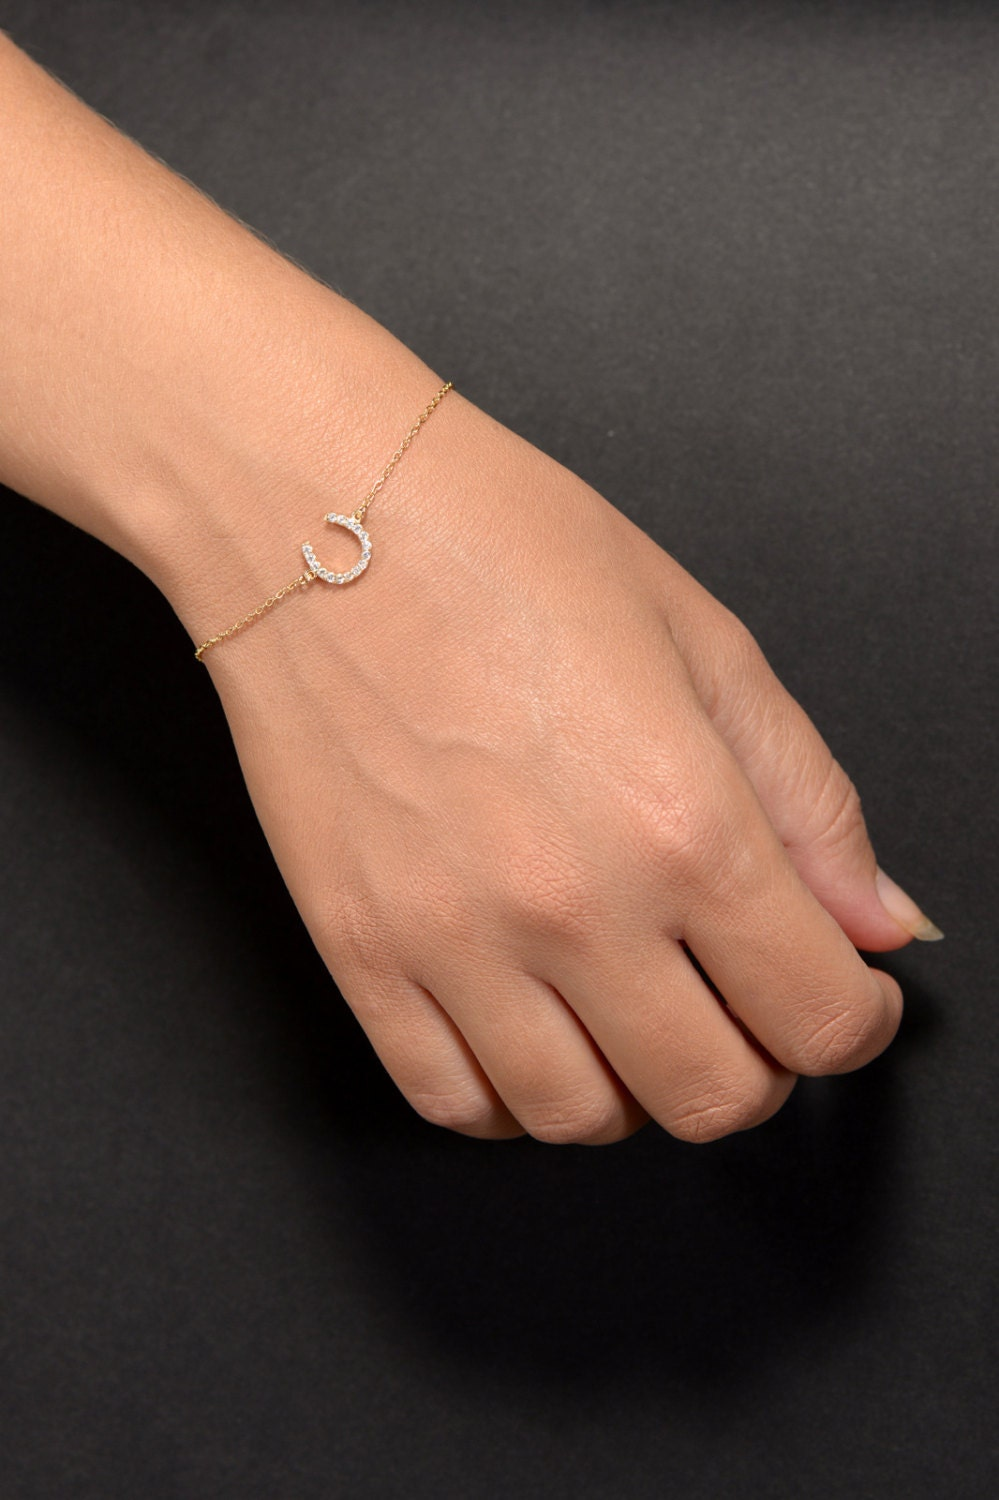 Lucky Horseshoe Bracelet in Gold Plating, Hand Made Israeli Jewelry